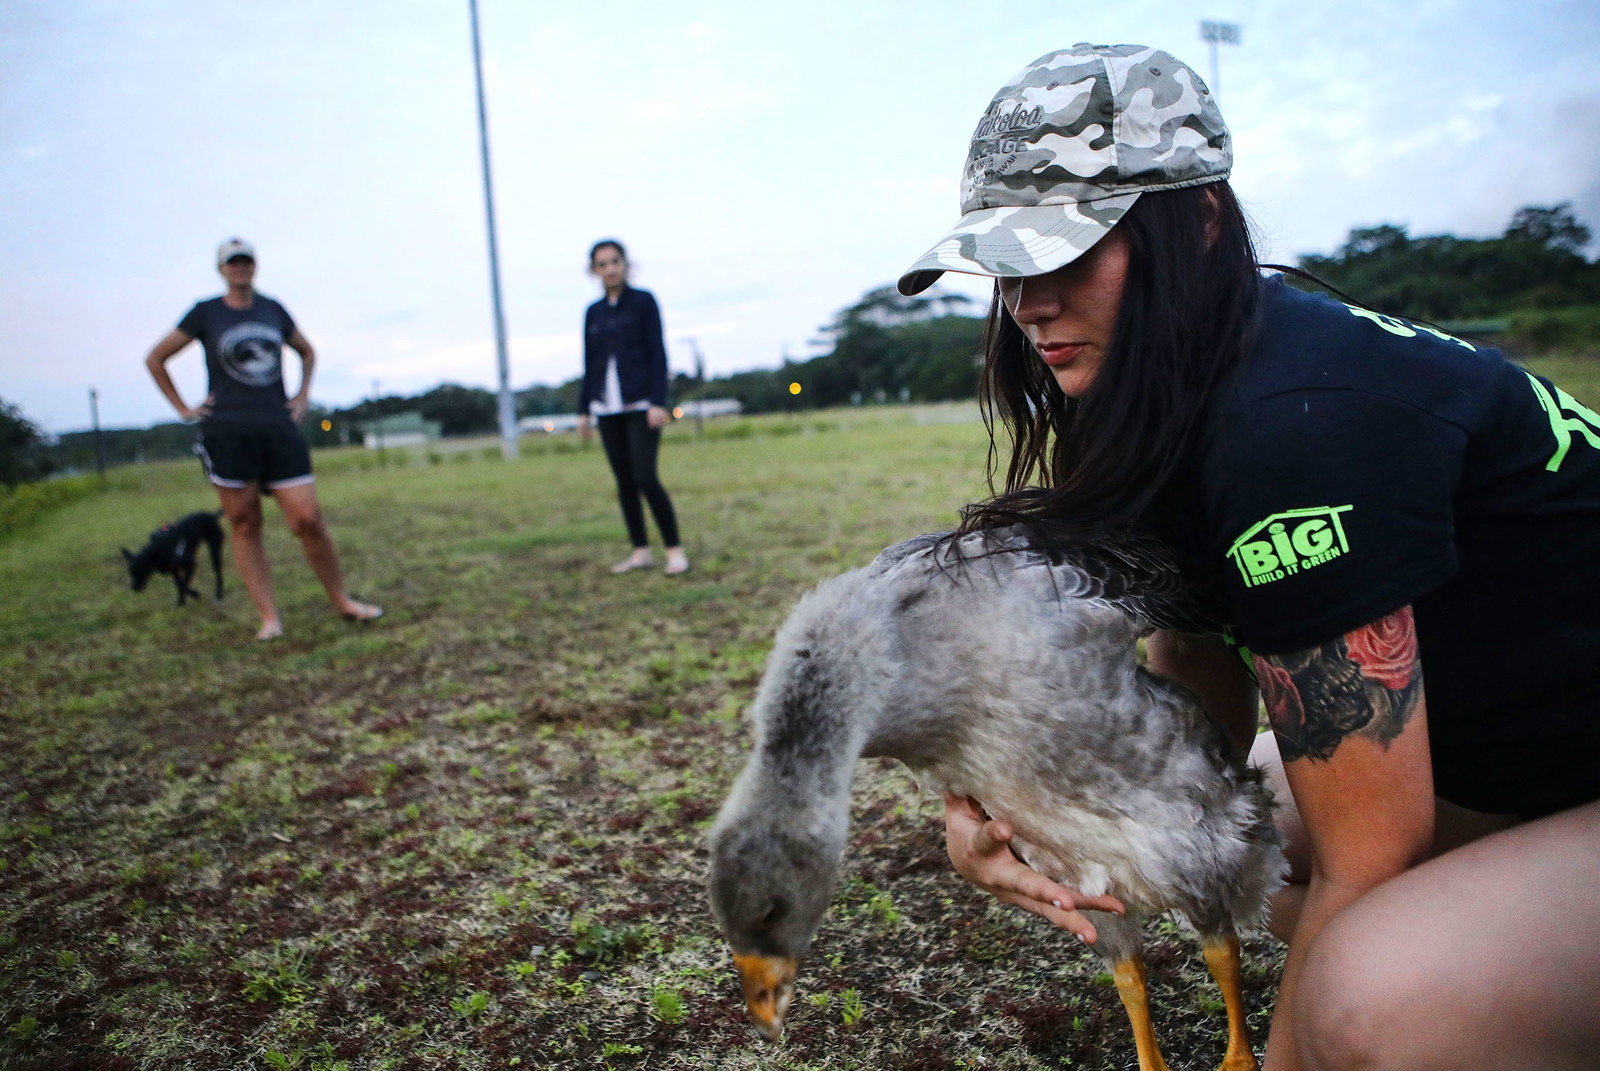 Evacuees Stacy Welch, Taylor Burns, and Maddy Welch gather with their pet goose and dog outside the emergency shelter in Pahoa.